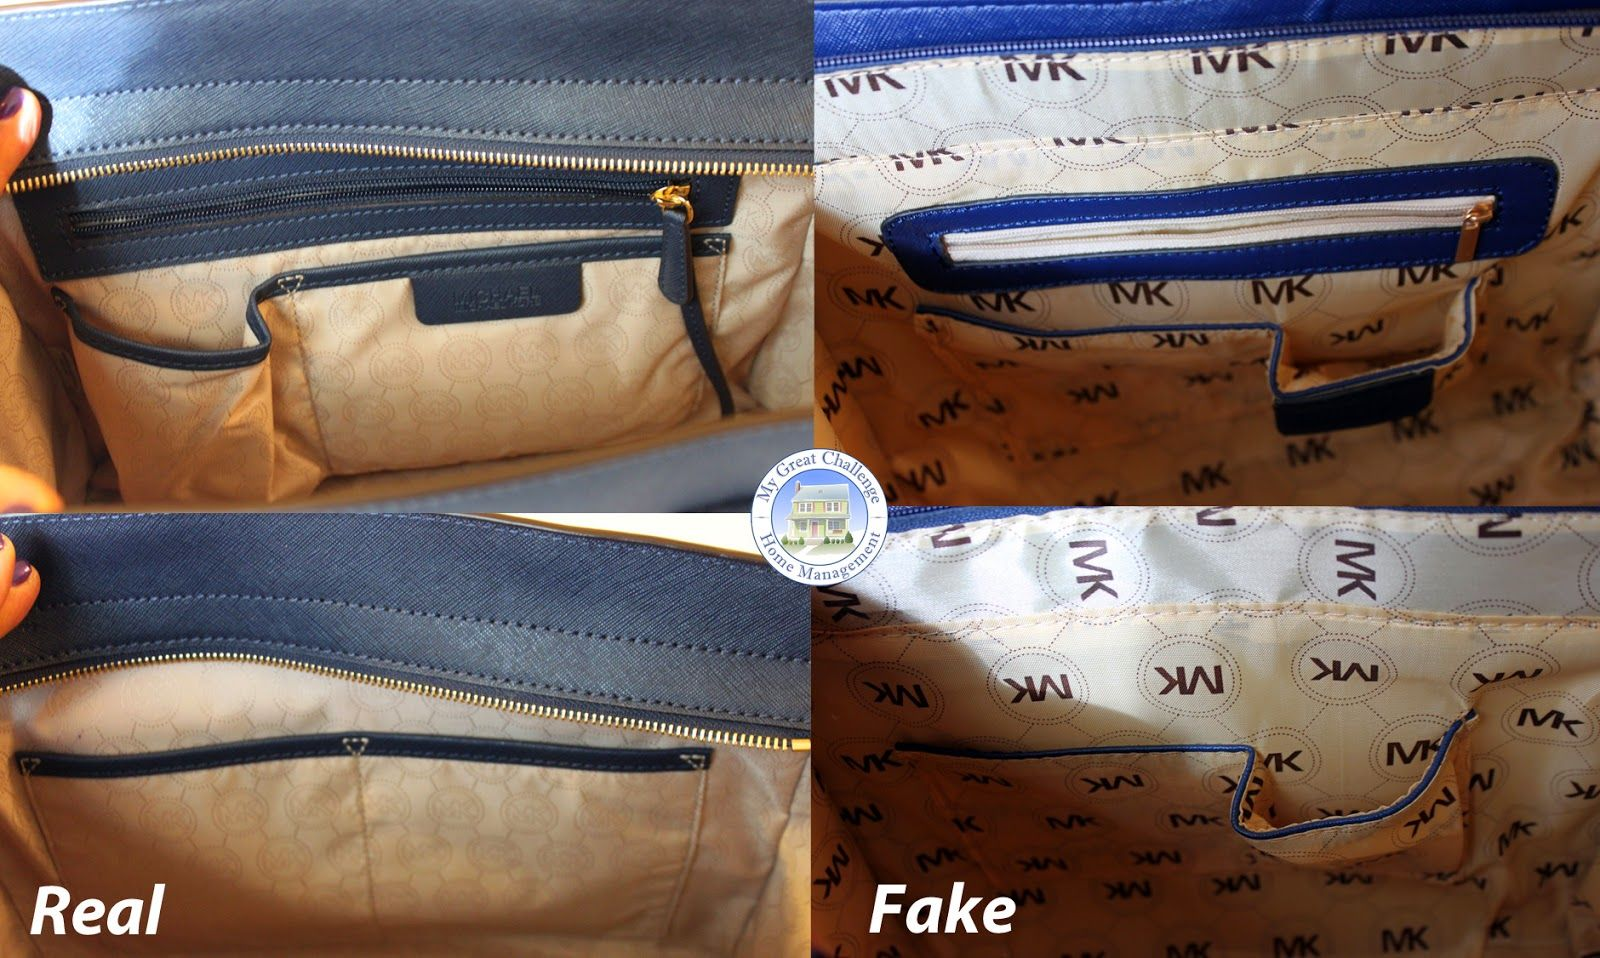 474330310a1d Michael Kors Selma - Fake VS. Real Comparison | all about bags ...